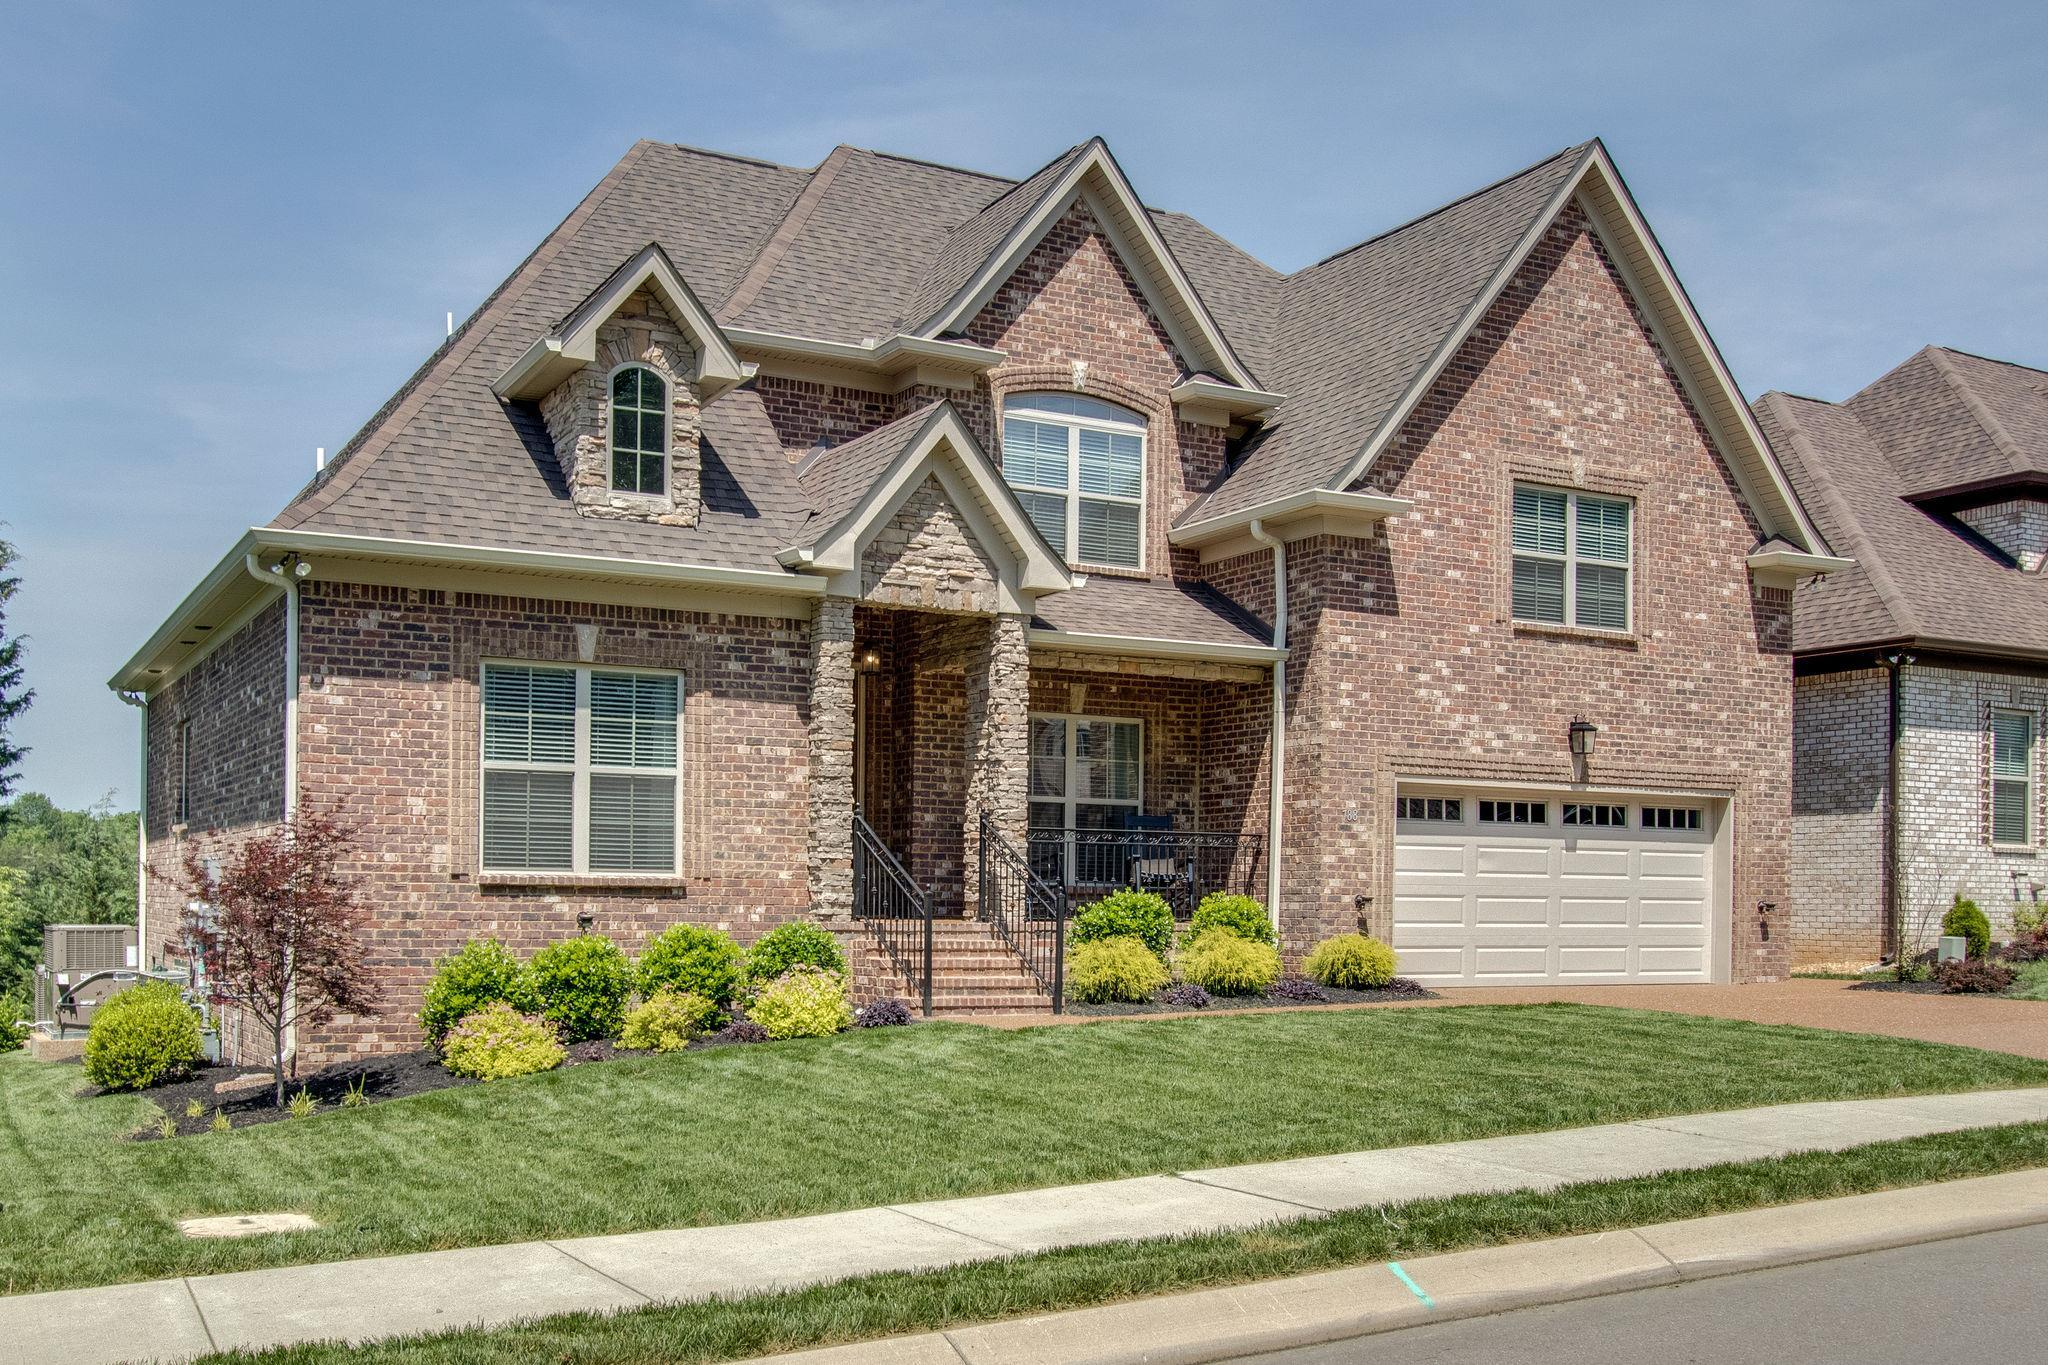 788 Rolling Creek Dr, Mount Juliet, TN 37122 (MLS #RTC2051578) :: RE/MAX Homes And Estates